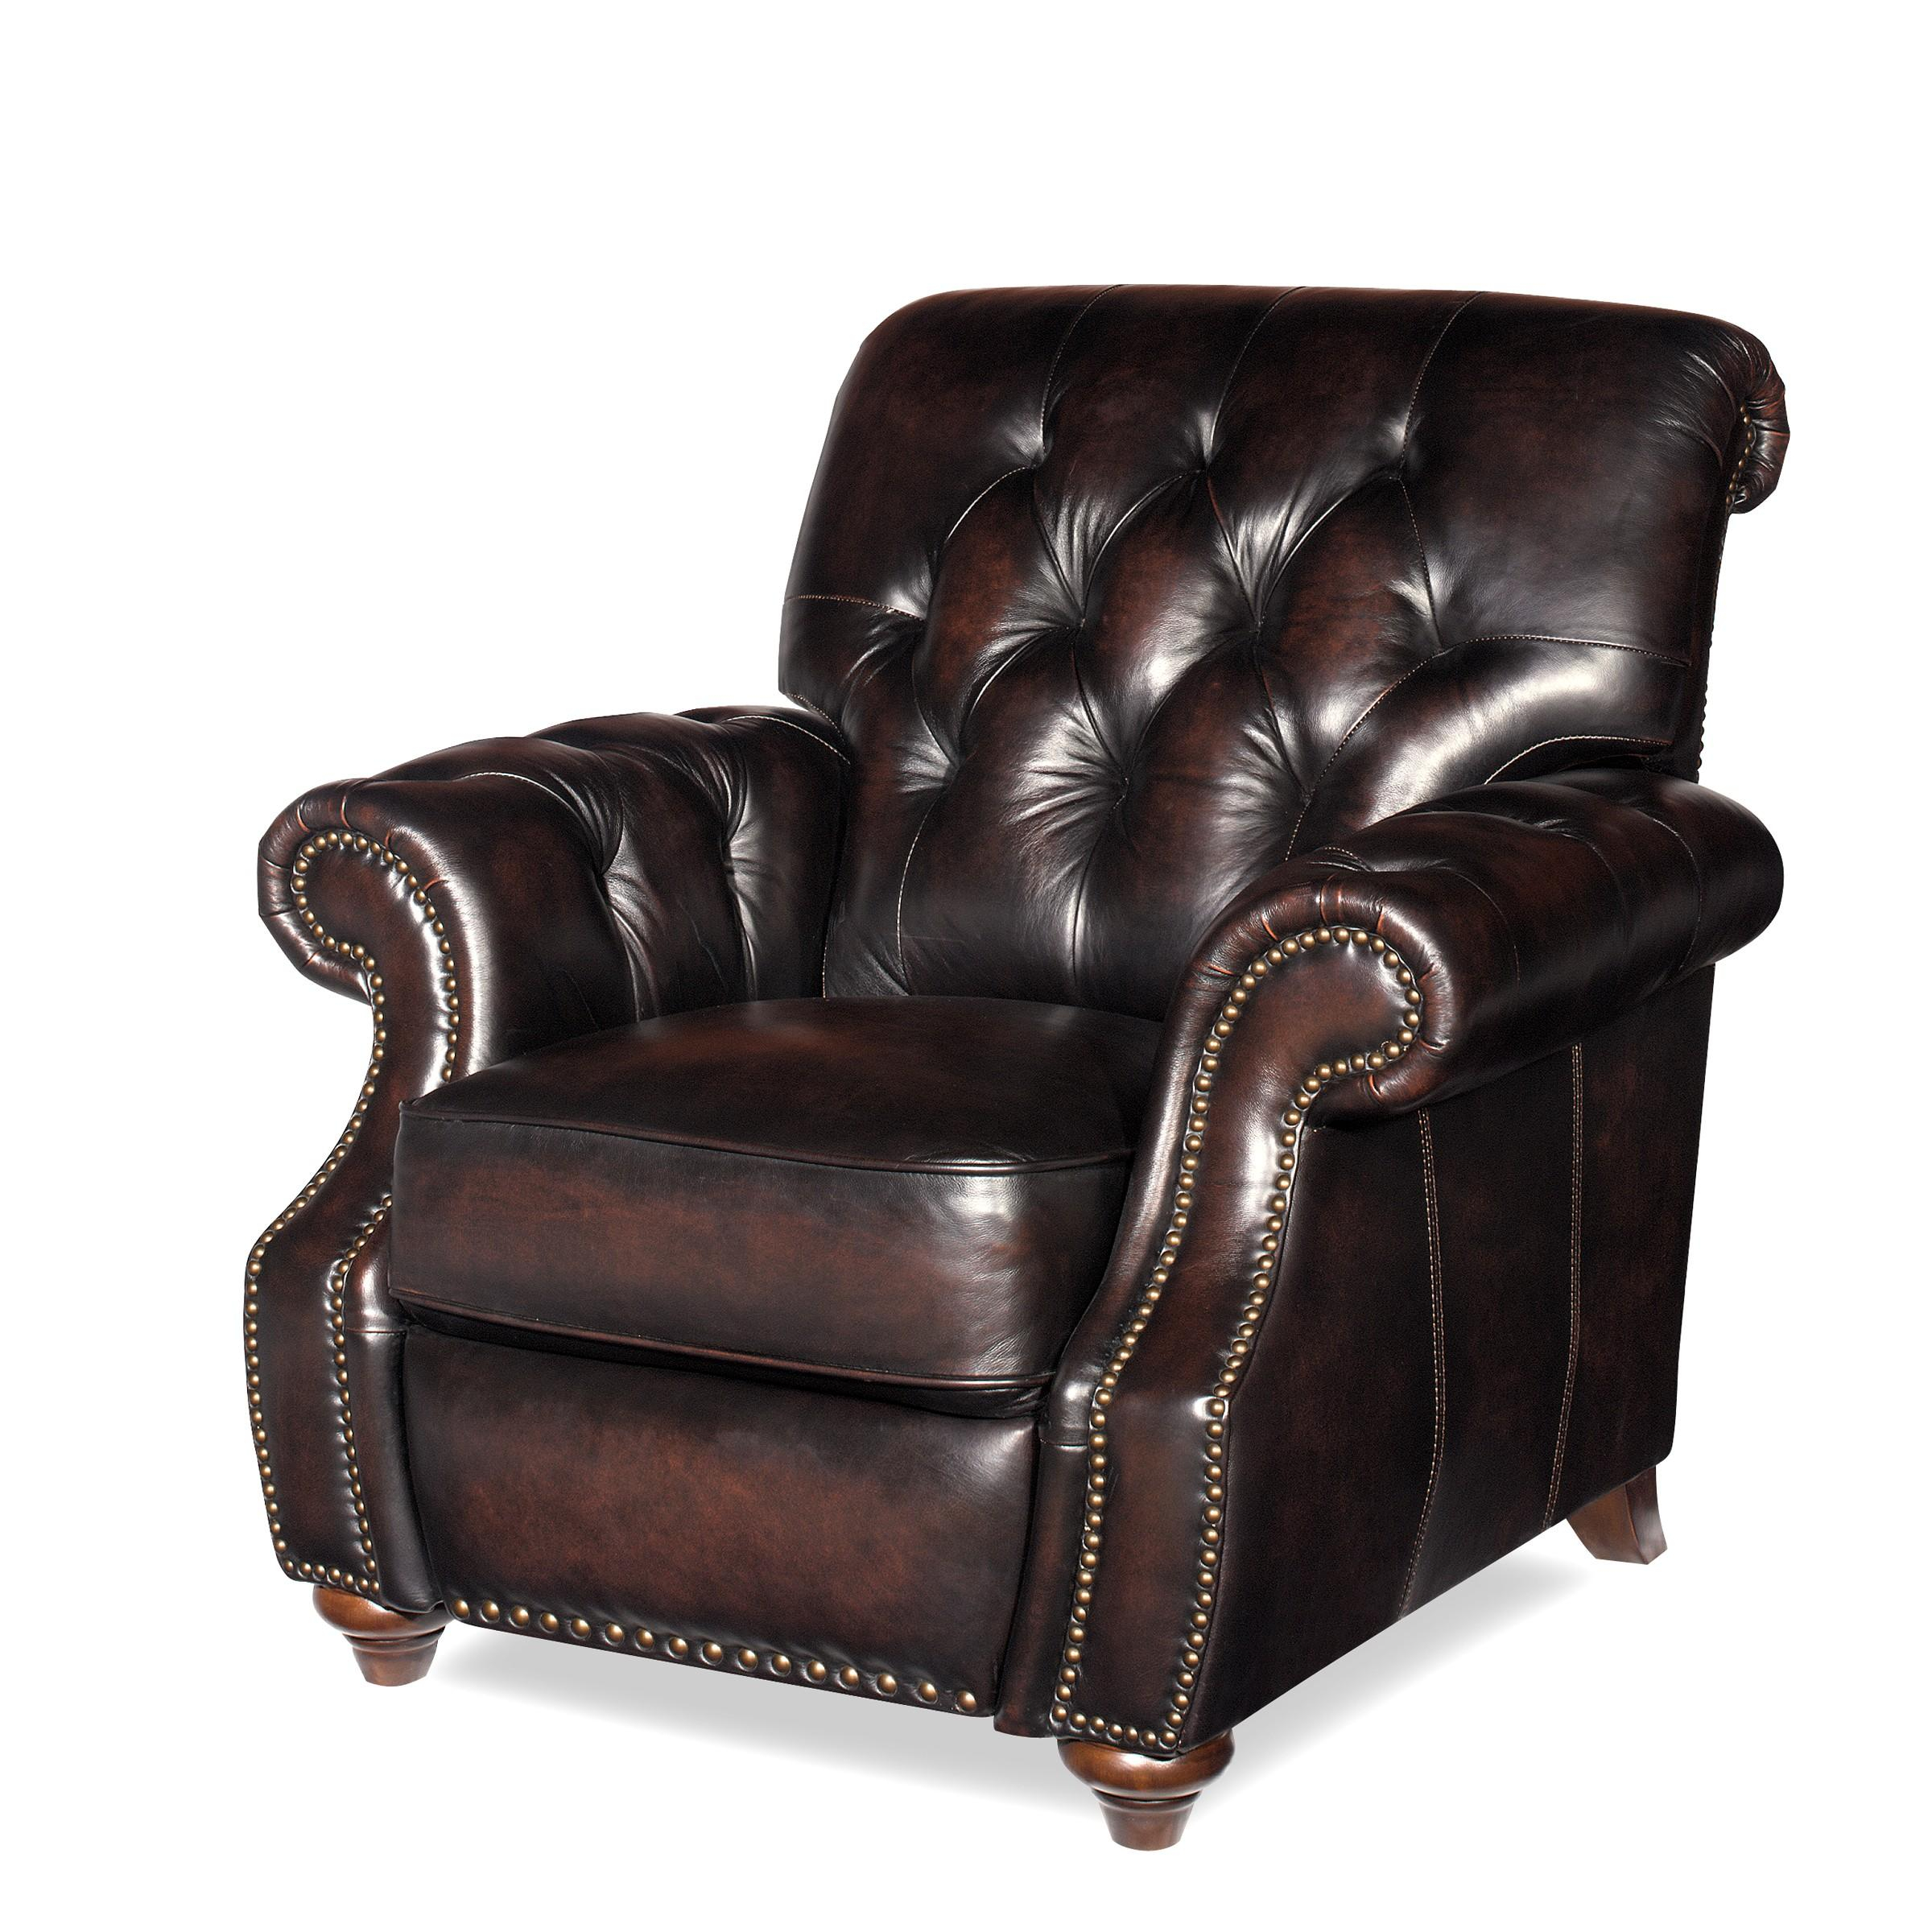 Set Electric Chair Lewis Chairs Black Garden Office Footstool Sofa Inside Chocolate Brown Leather Tufted Swivel Chairs (View 18 of 20)